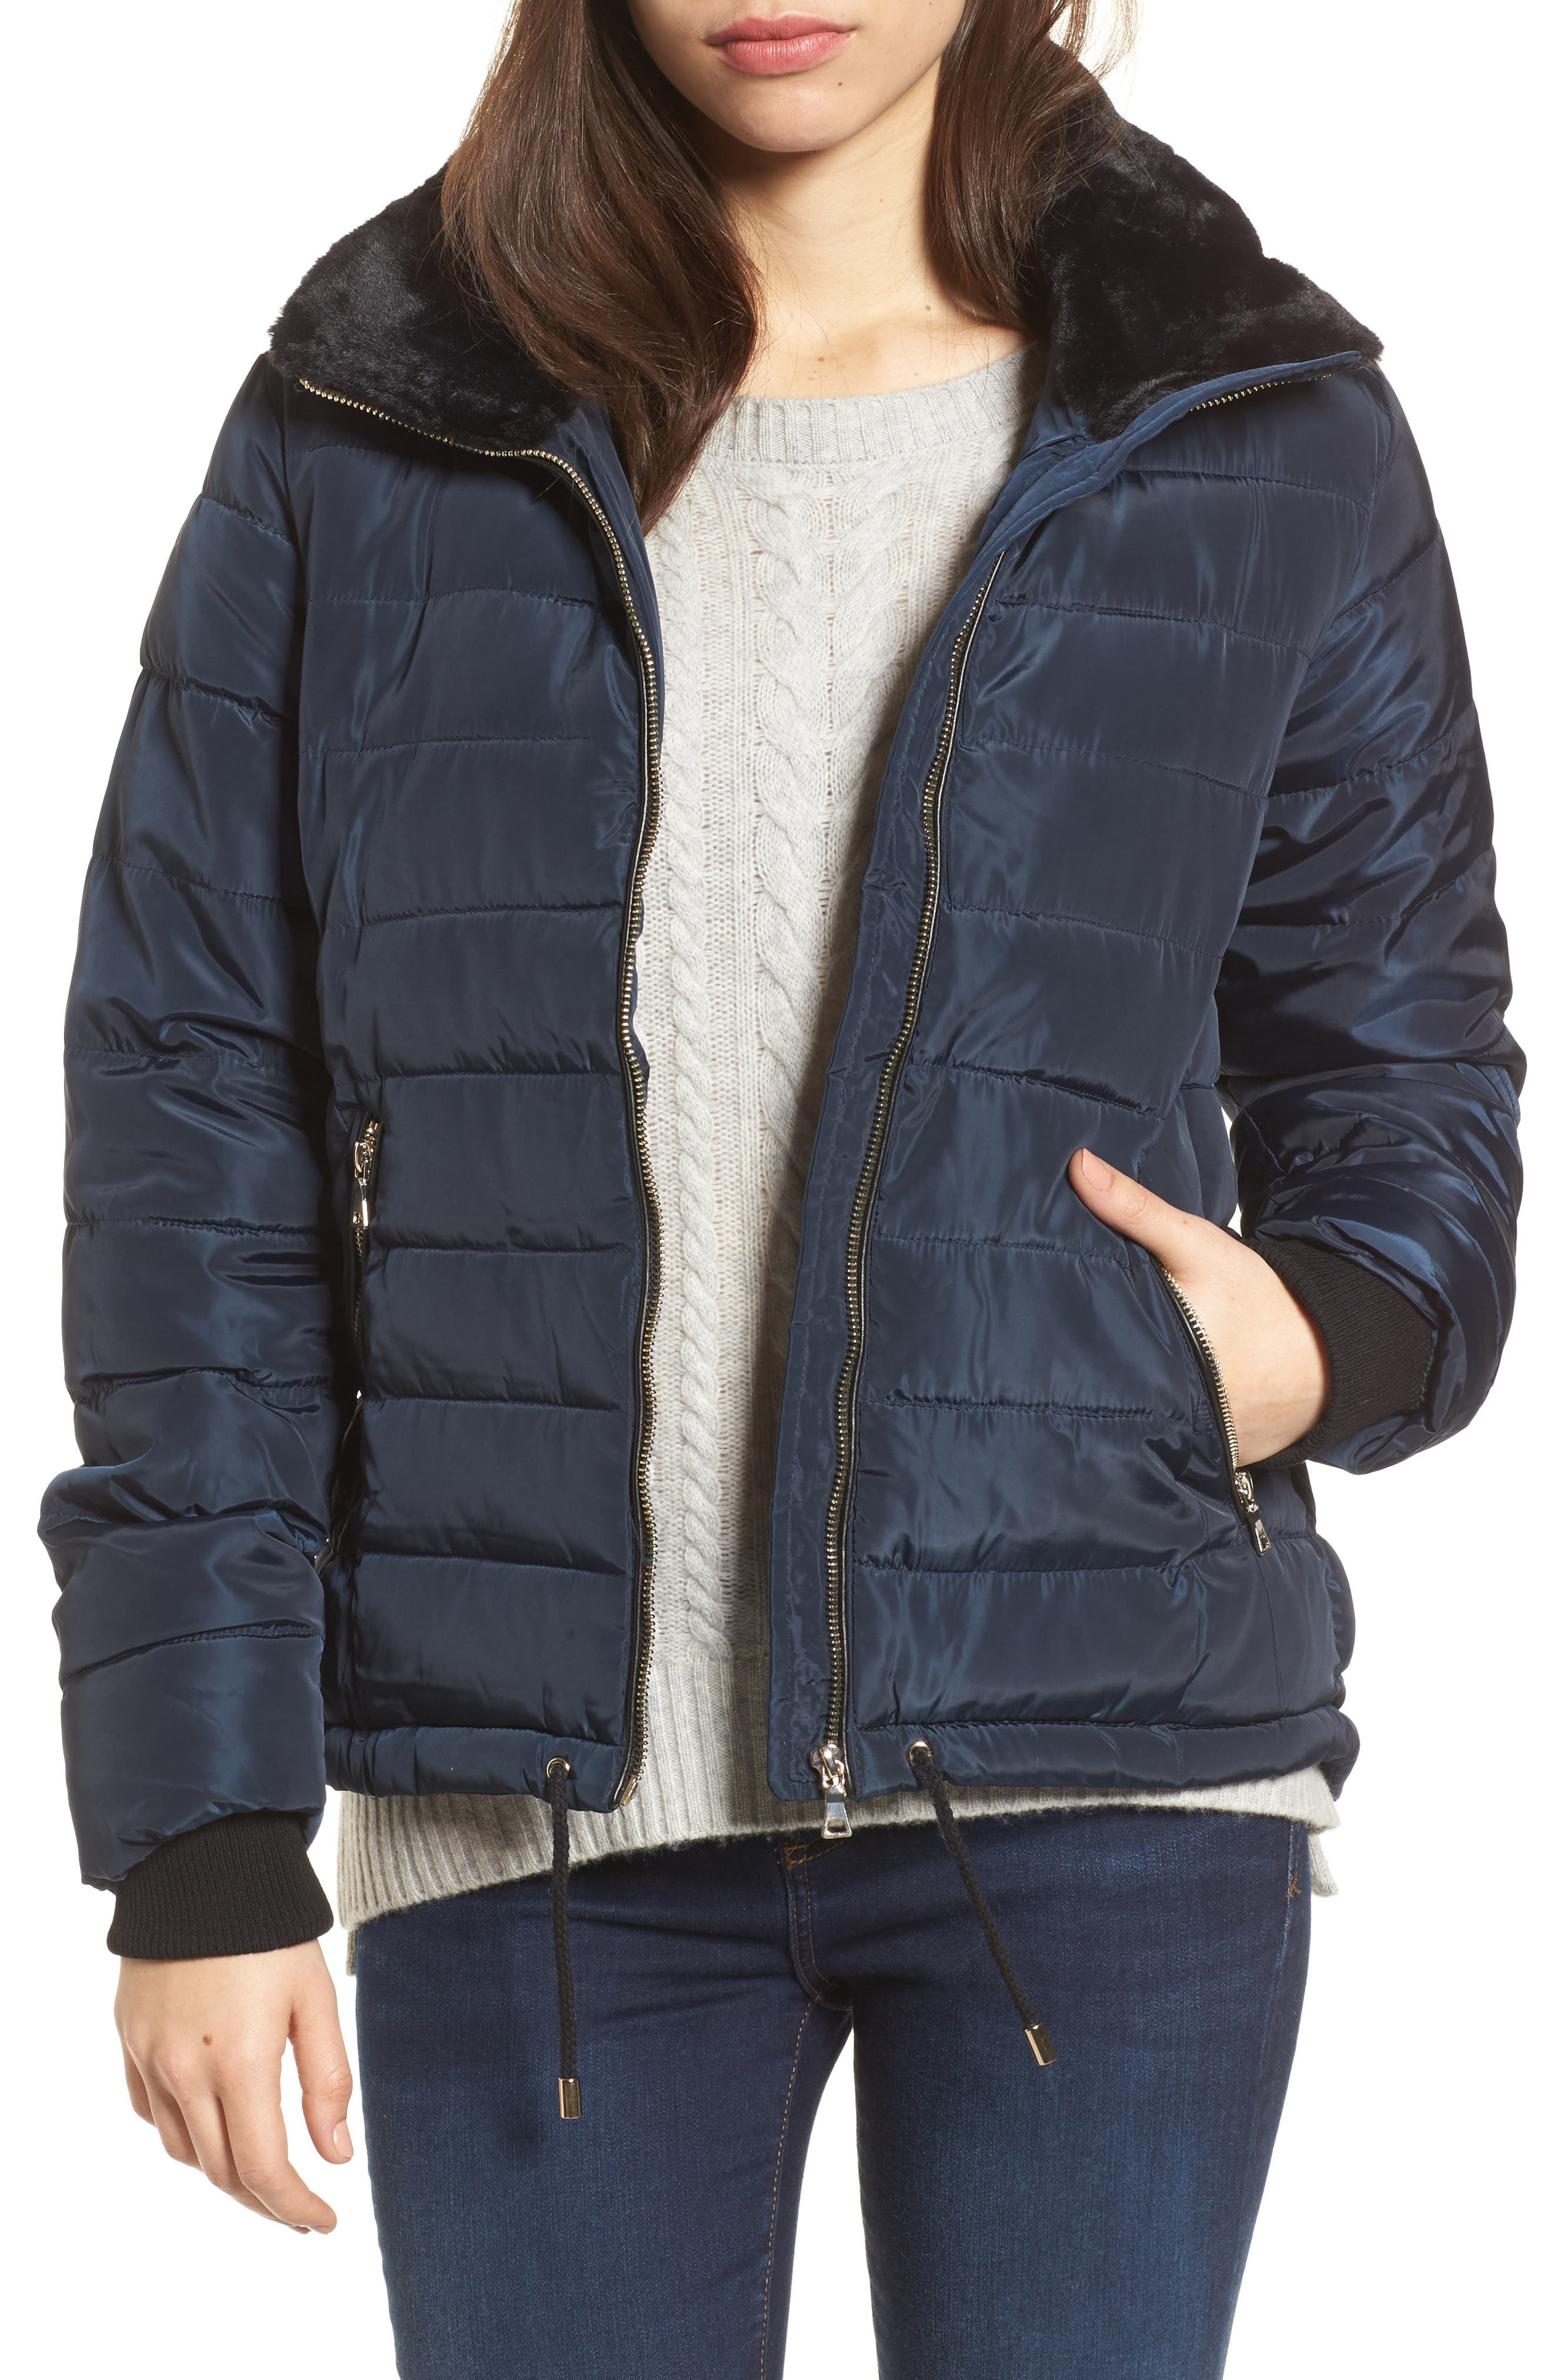 Puffer Jacket with Faux Fur Collar Lining,                             Main thumbnail 1, color,                             Navy Blue